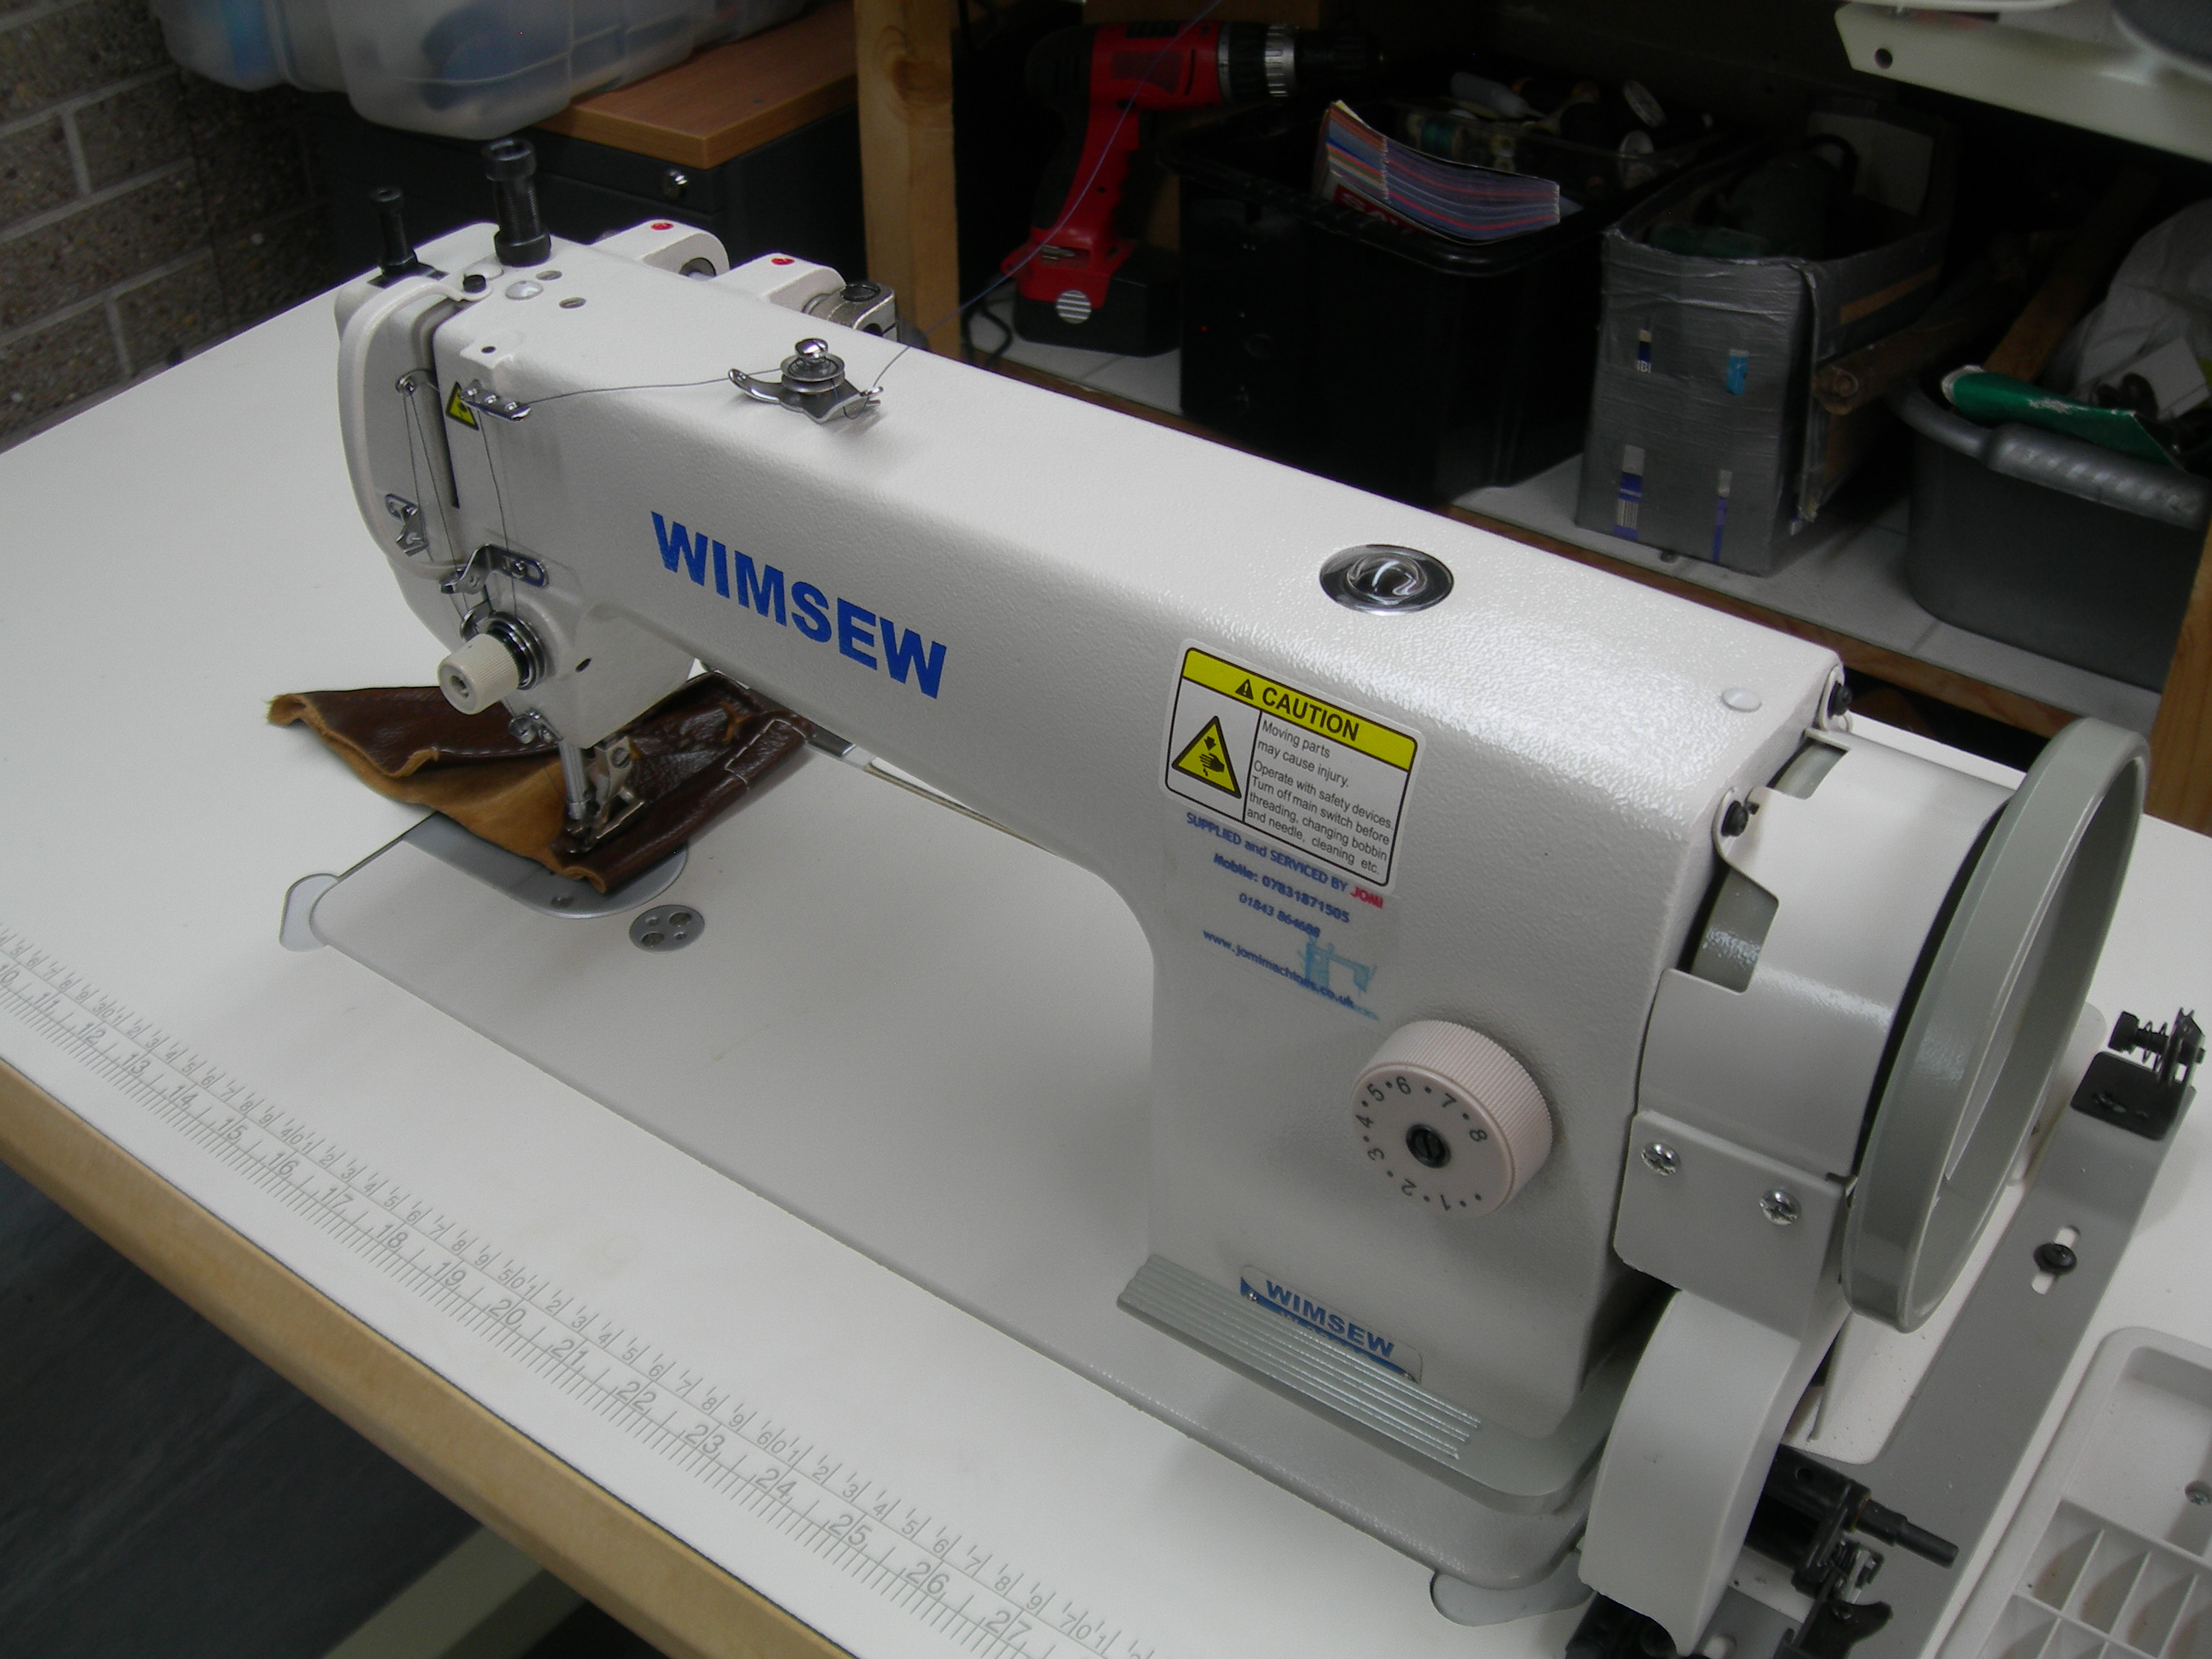 industrial walking foot sewing machine wimsew w3300c ebay. Black Bedroom Furniture Sets. Home Design Ideas